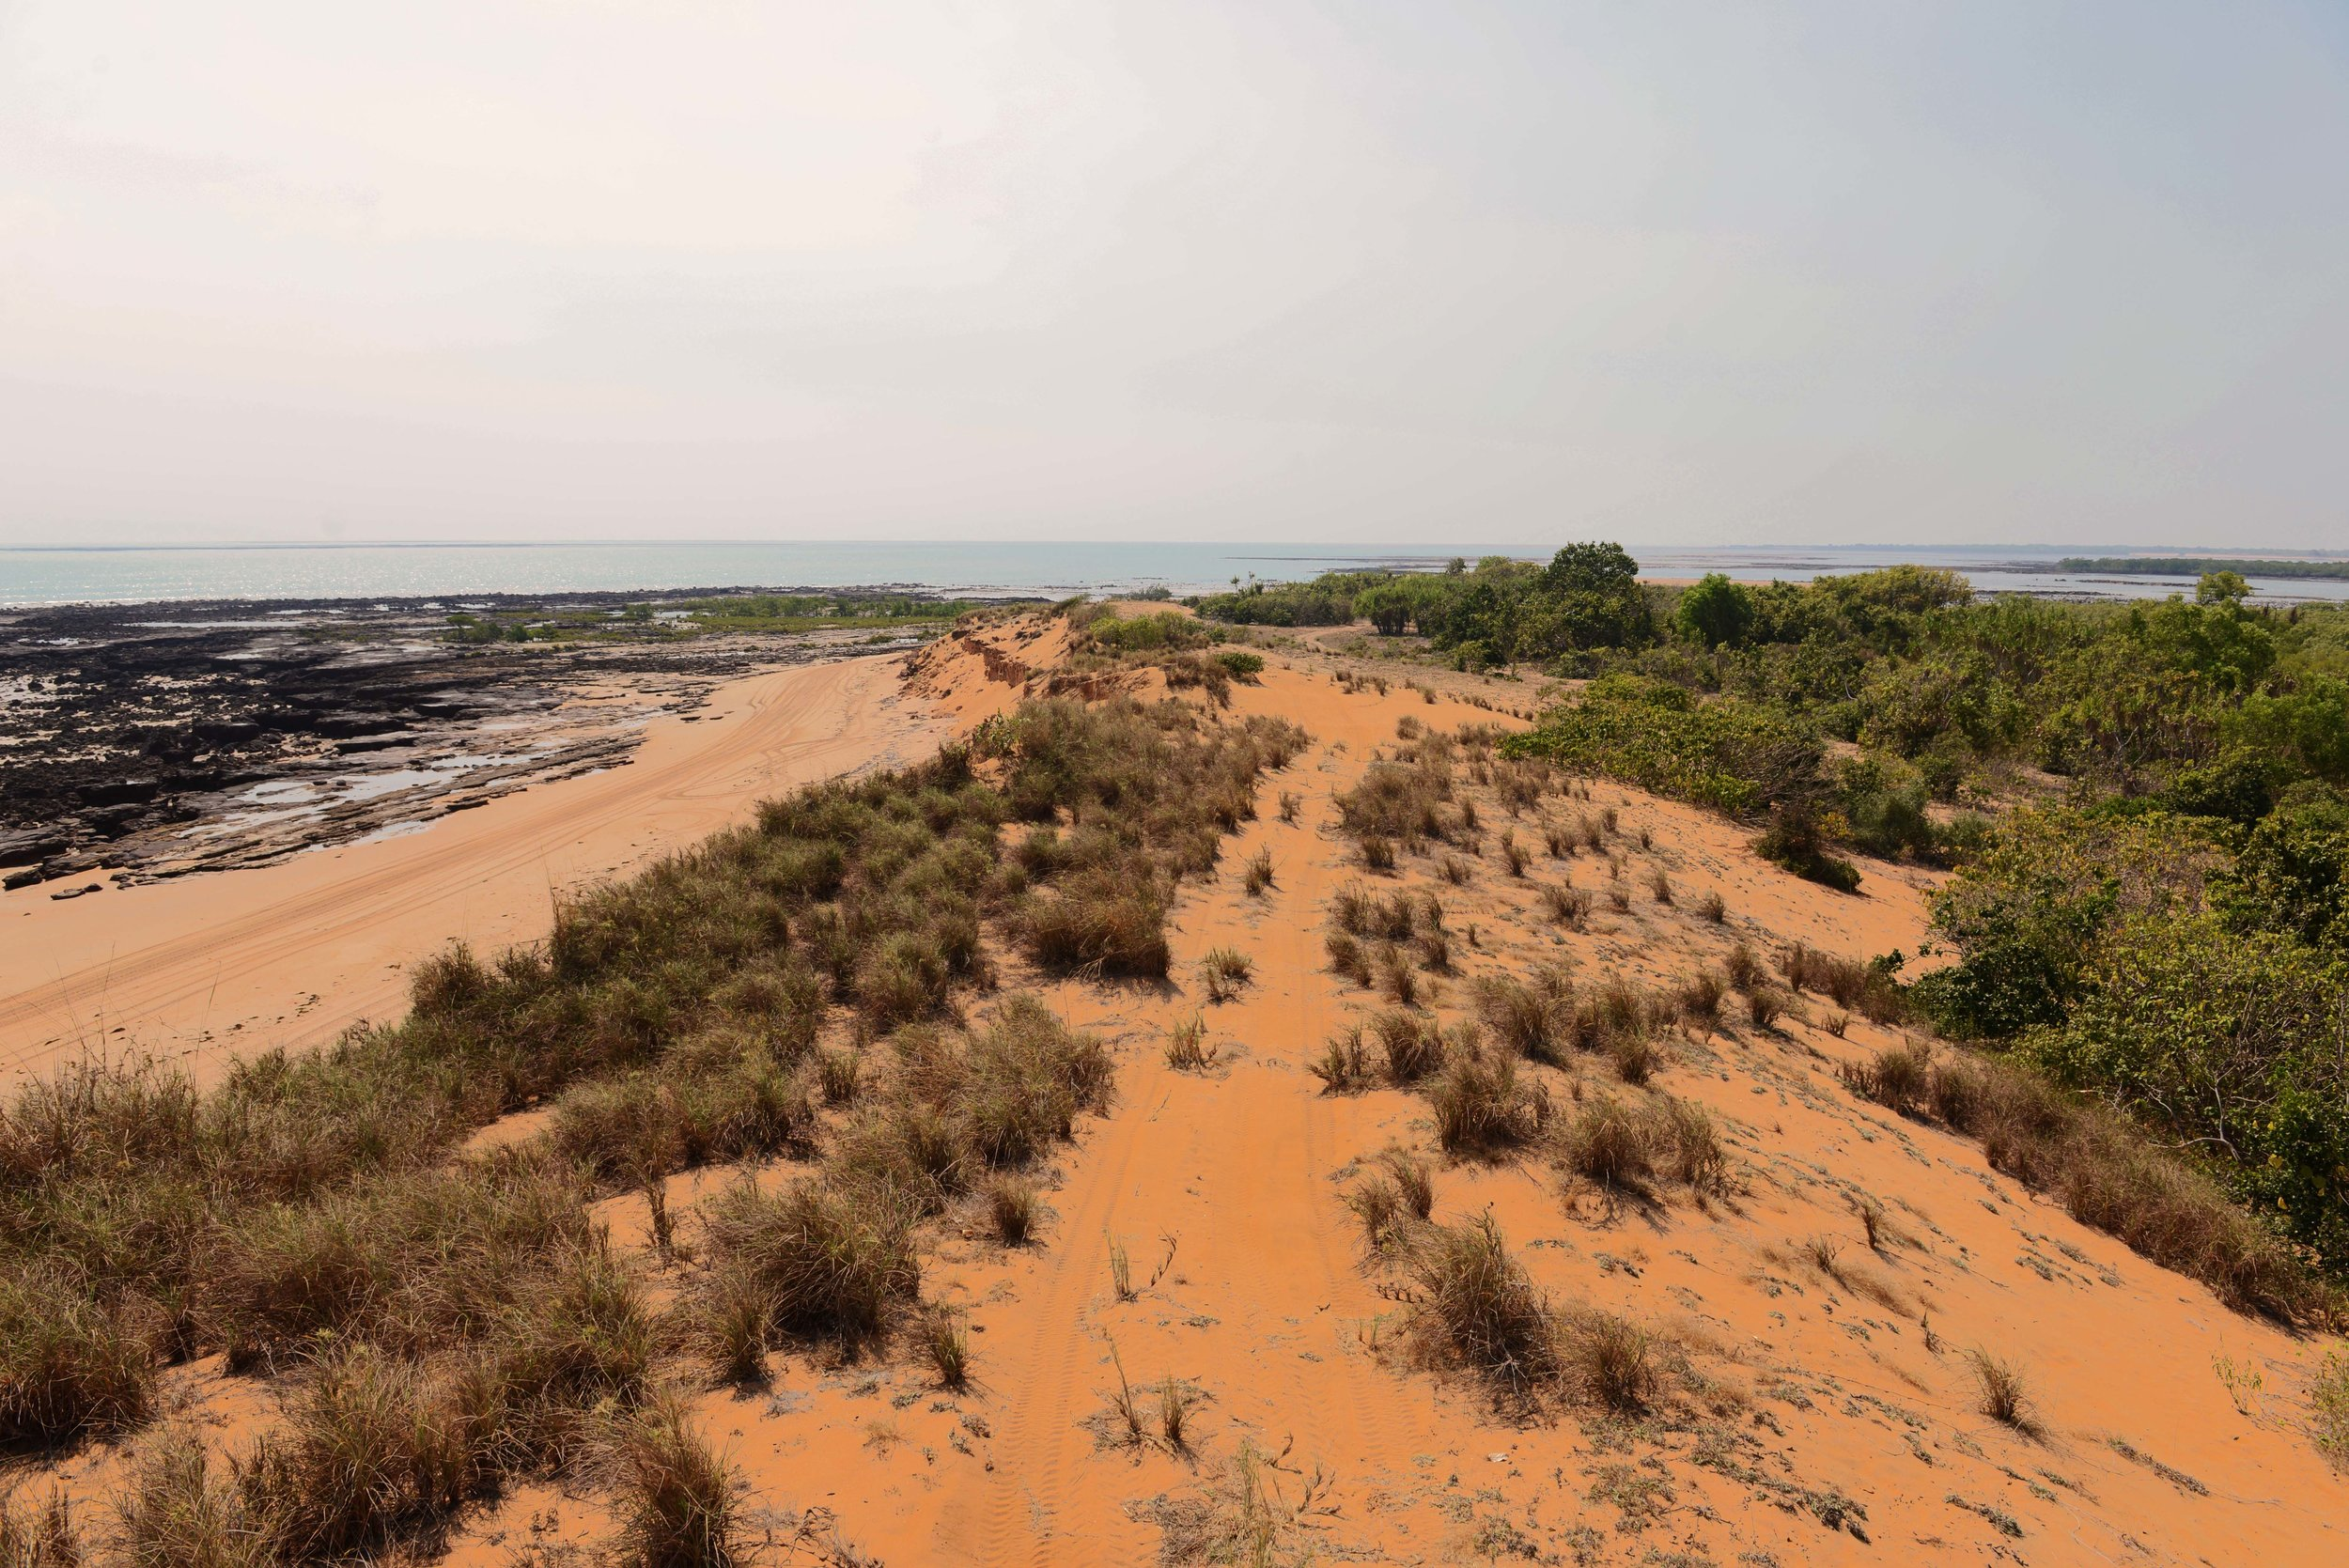 Consider traveling along the back of the dunes